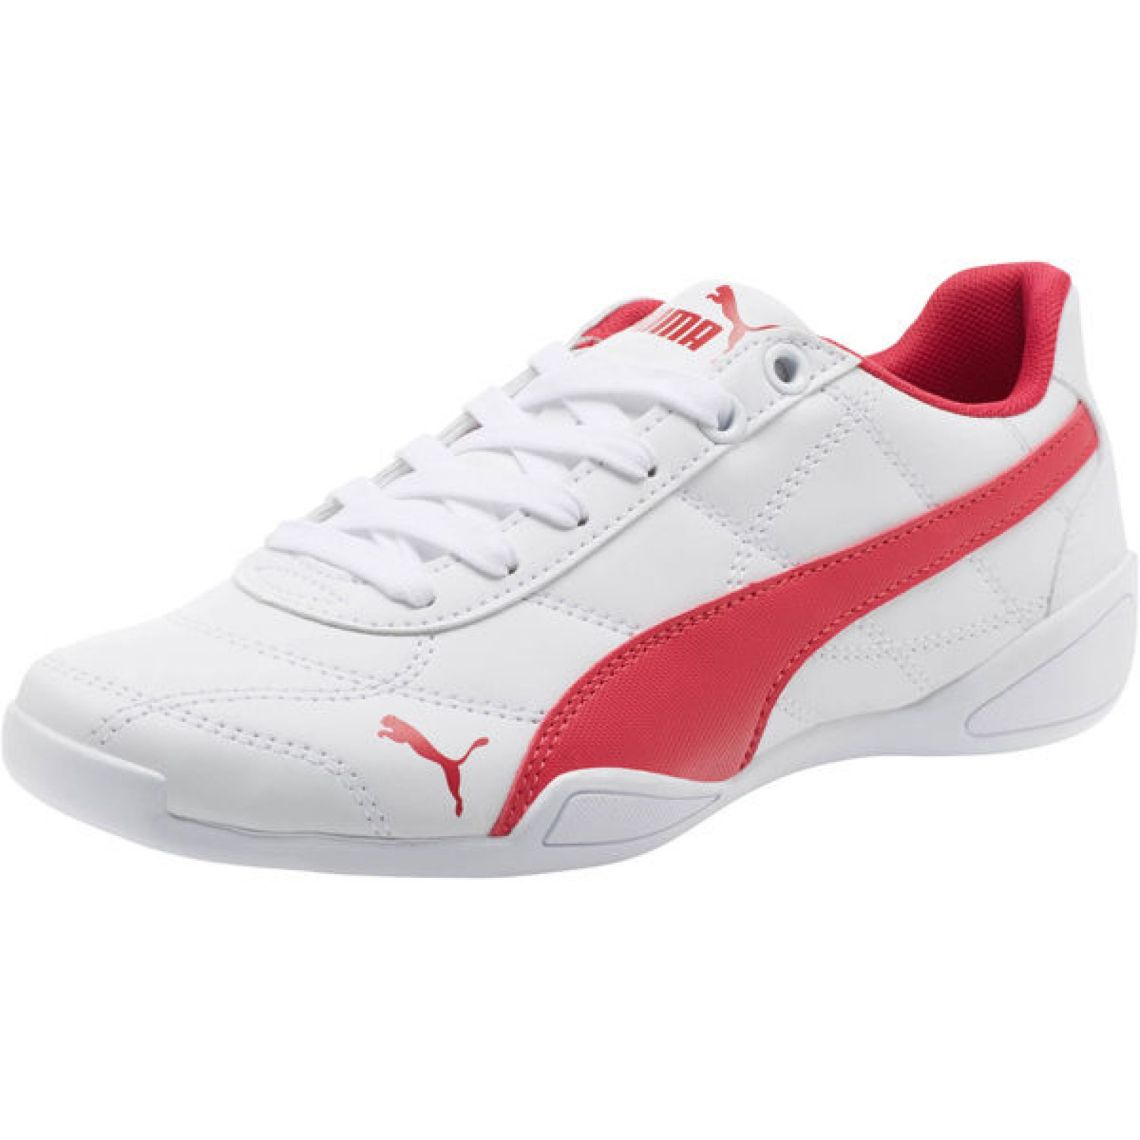 Tune Cat 3 JR Shoes | Puma White-Love Potion | PUMA Footwear | PUMA United States